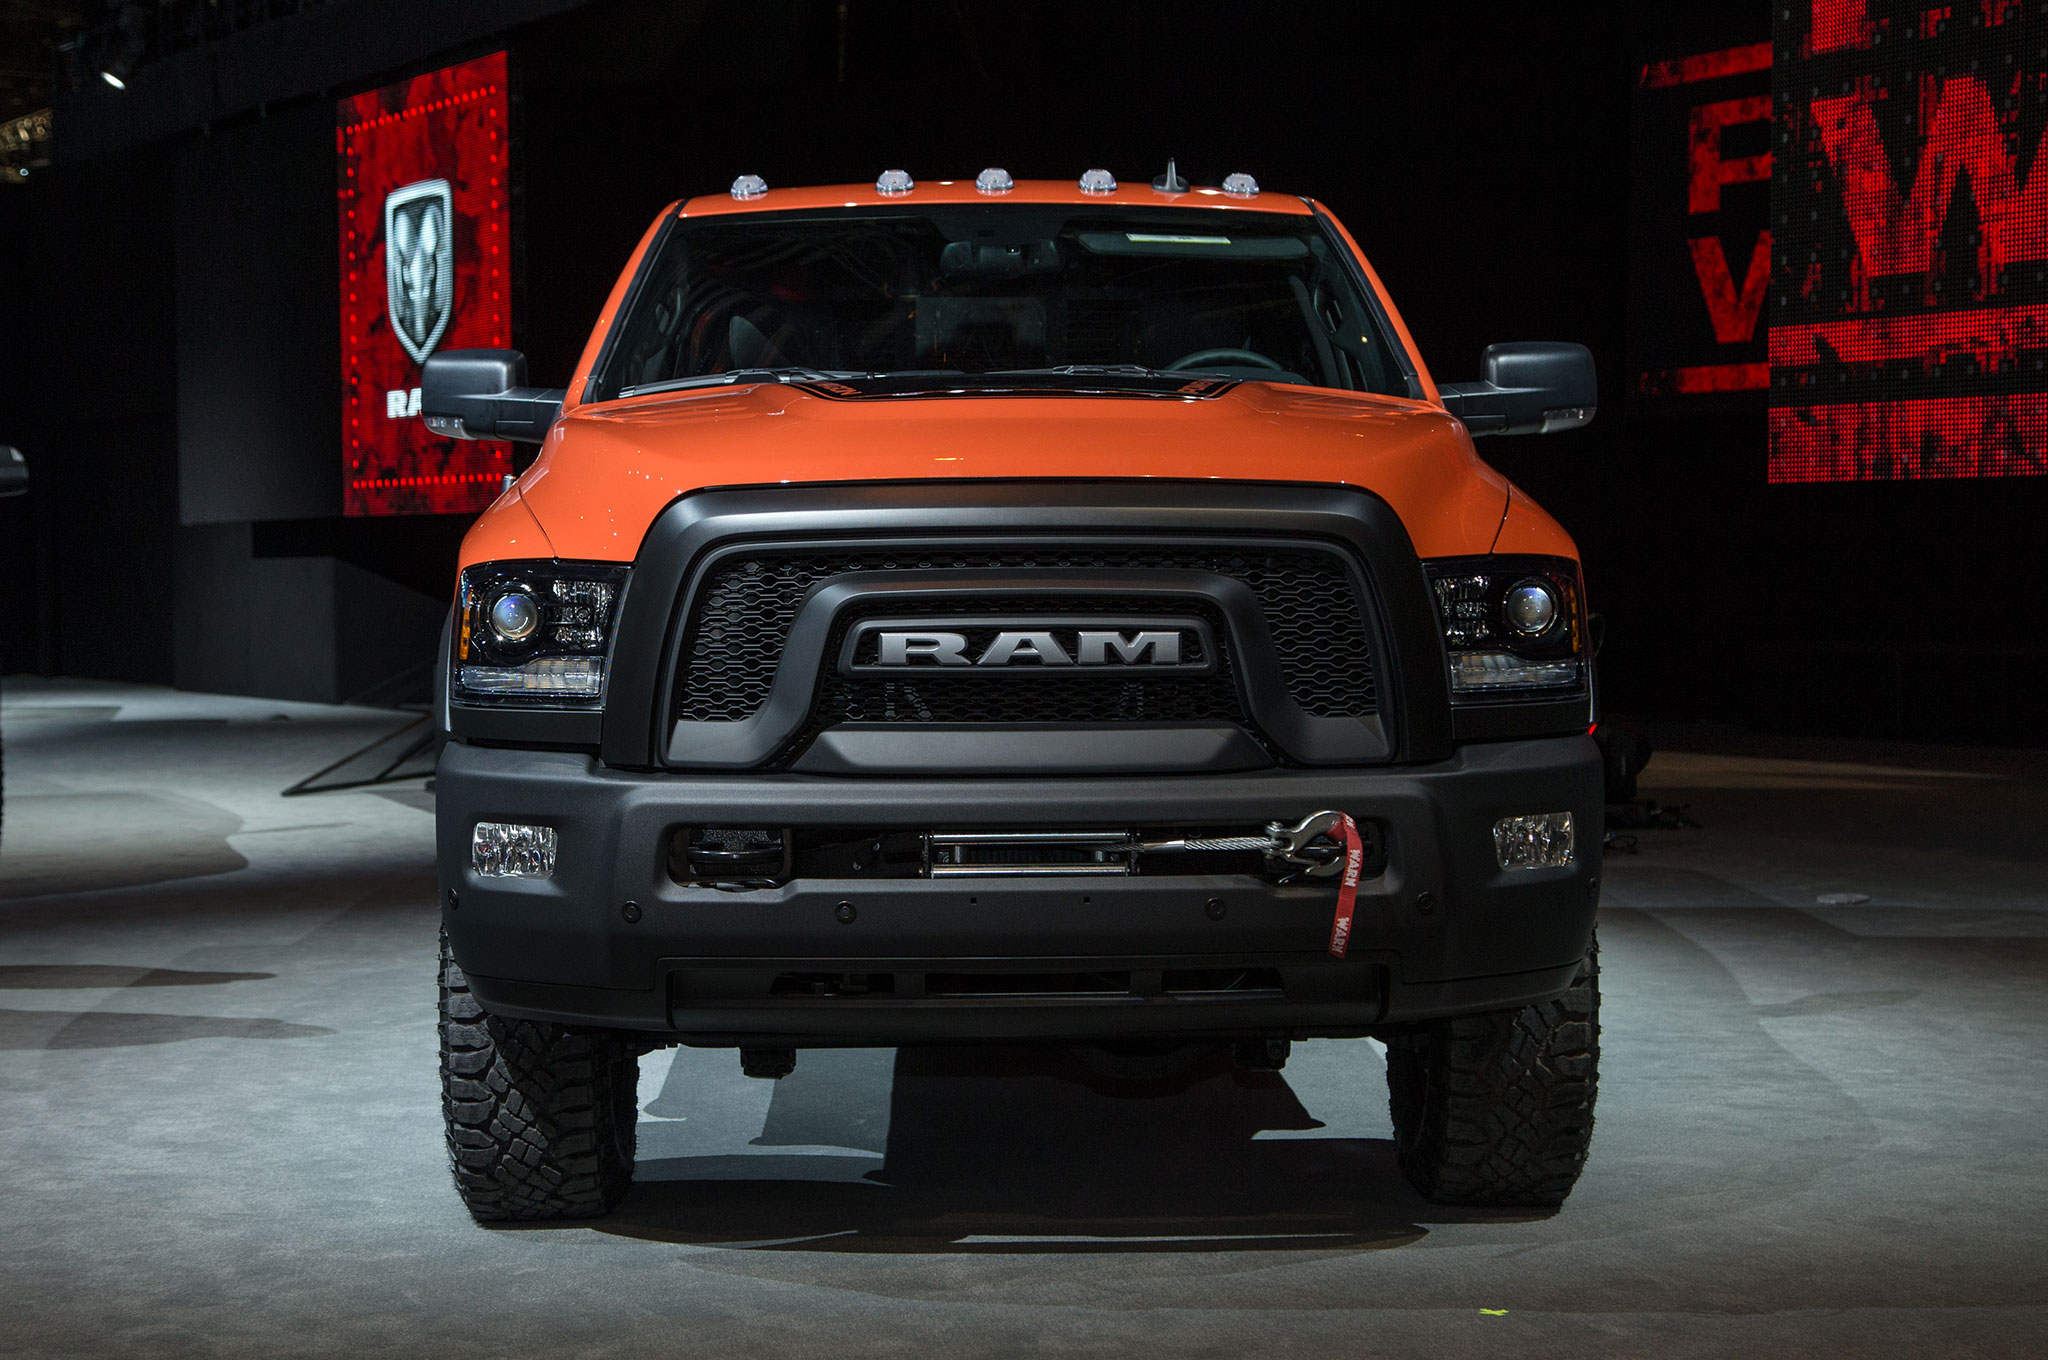 Ram 2500 For Sale >> 2017 Ram 2500 Power Wagon Adopts a Rebel-Like Face, Upgraded Chassis